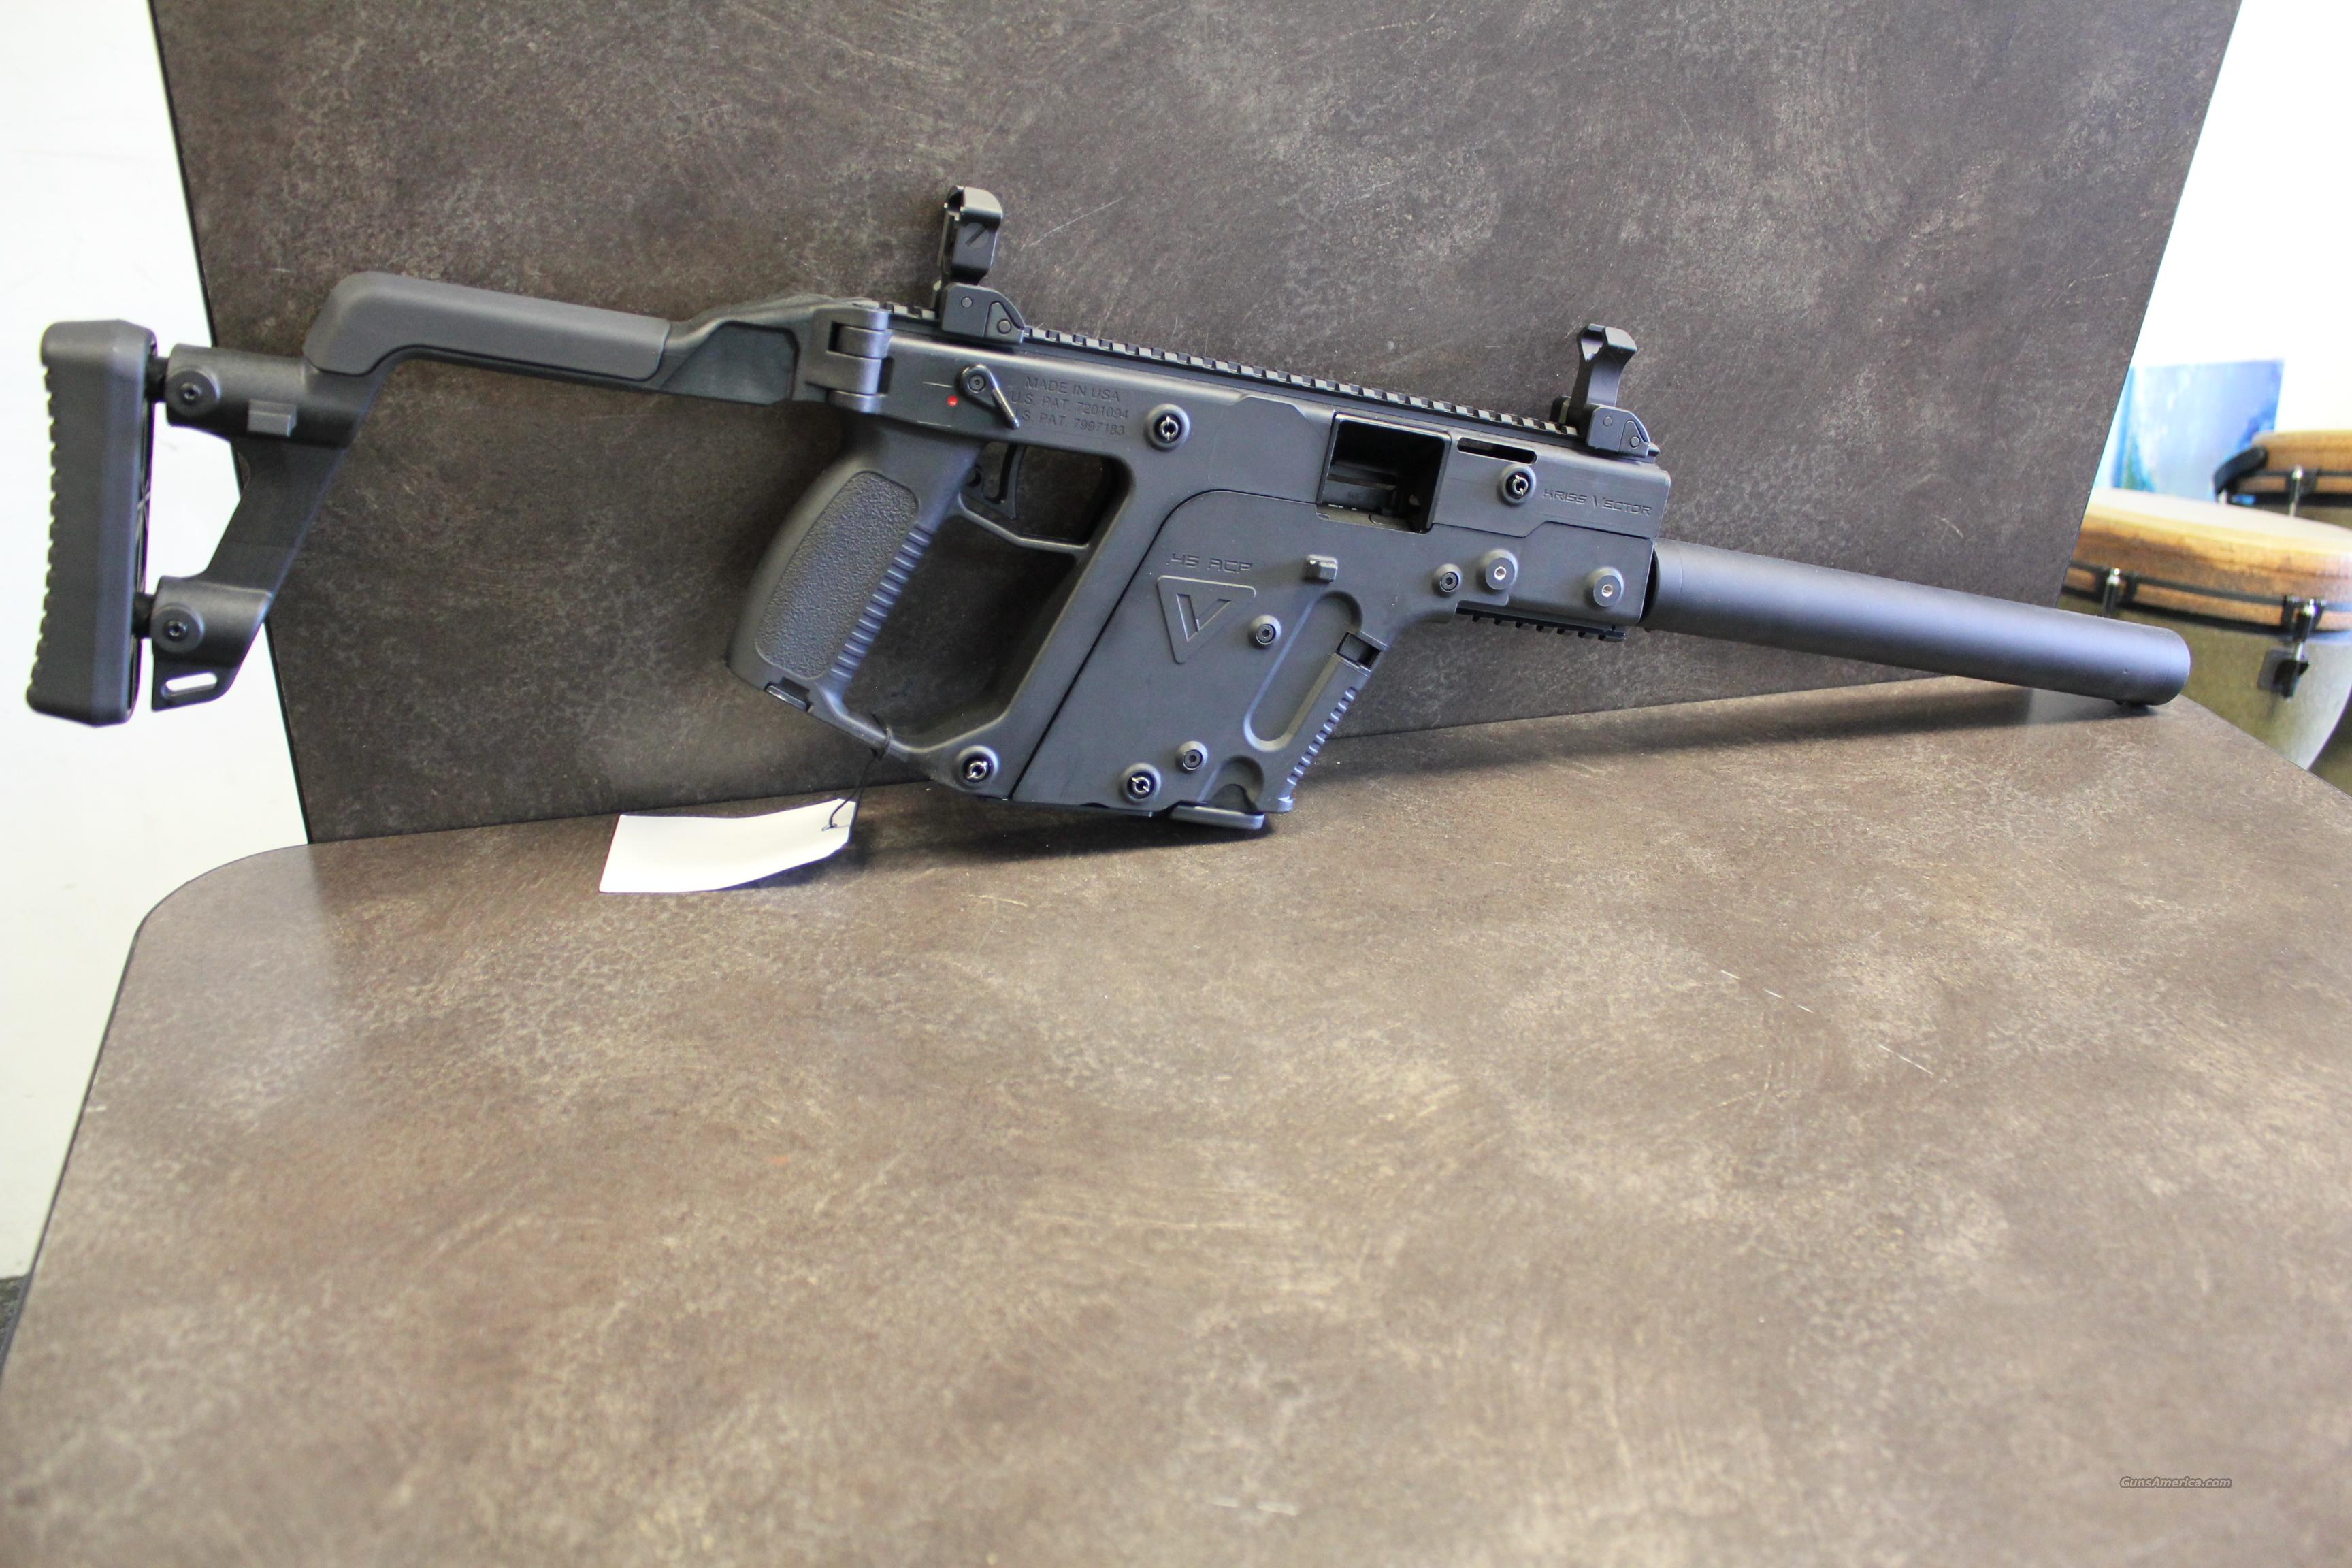 3456x2304 New Ca Legal Kriss Vector .45acp Rifle For Sale